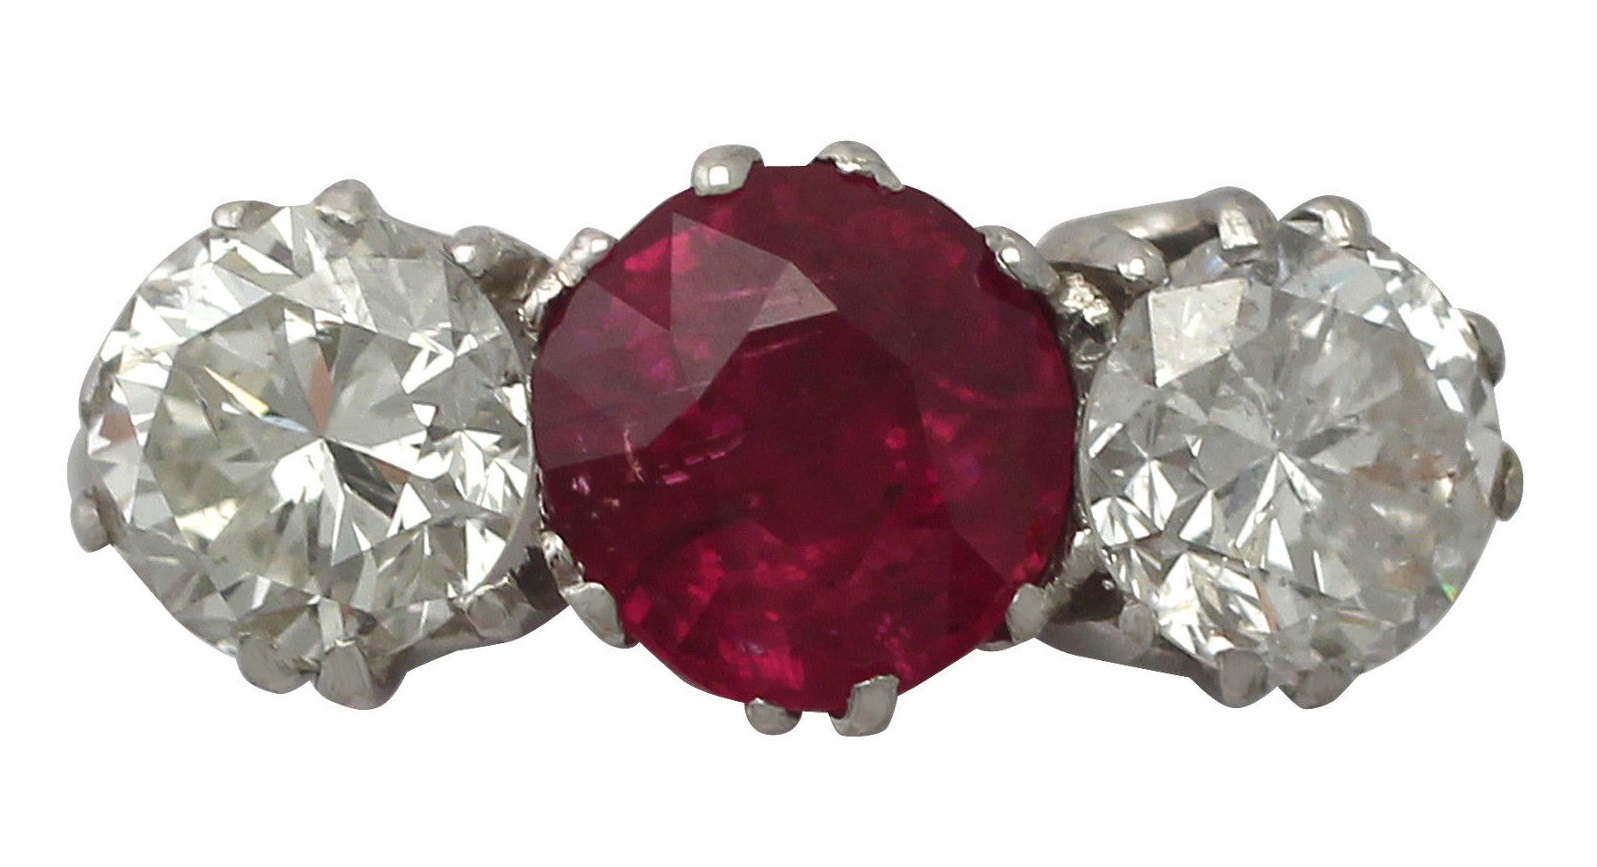 2.21 ct Ruby and 2.06 ct Diamond, Platinum Trilogy Ring - Vintage Circa 1940